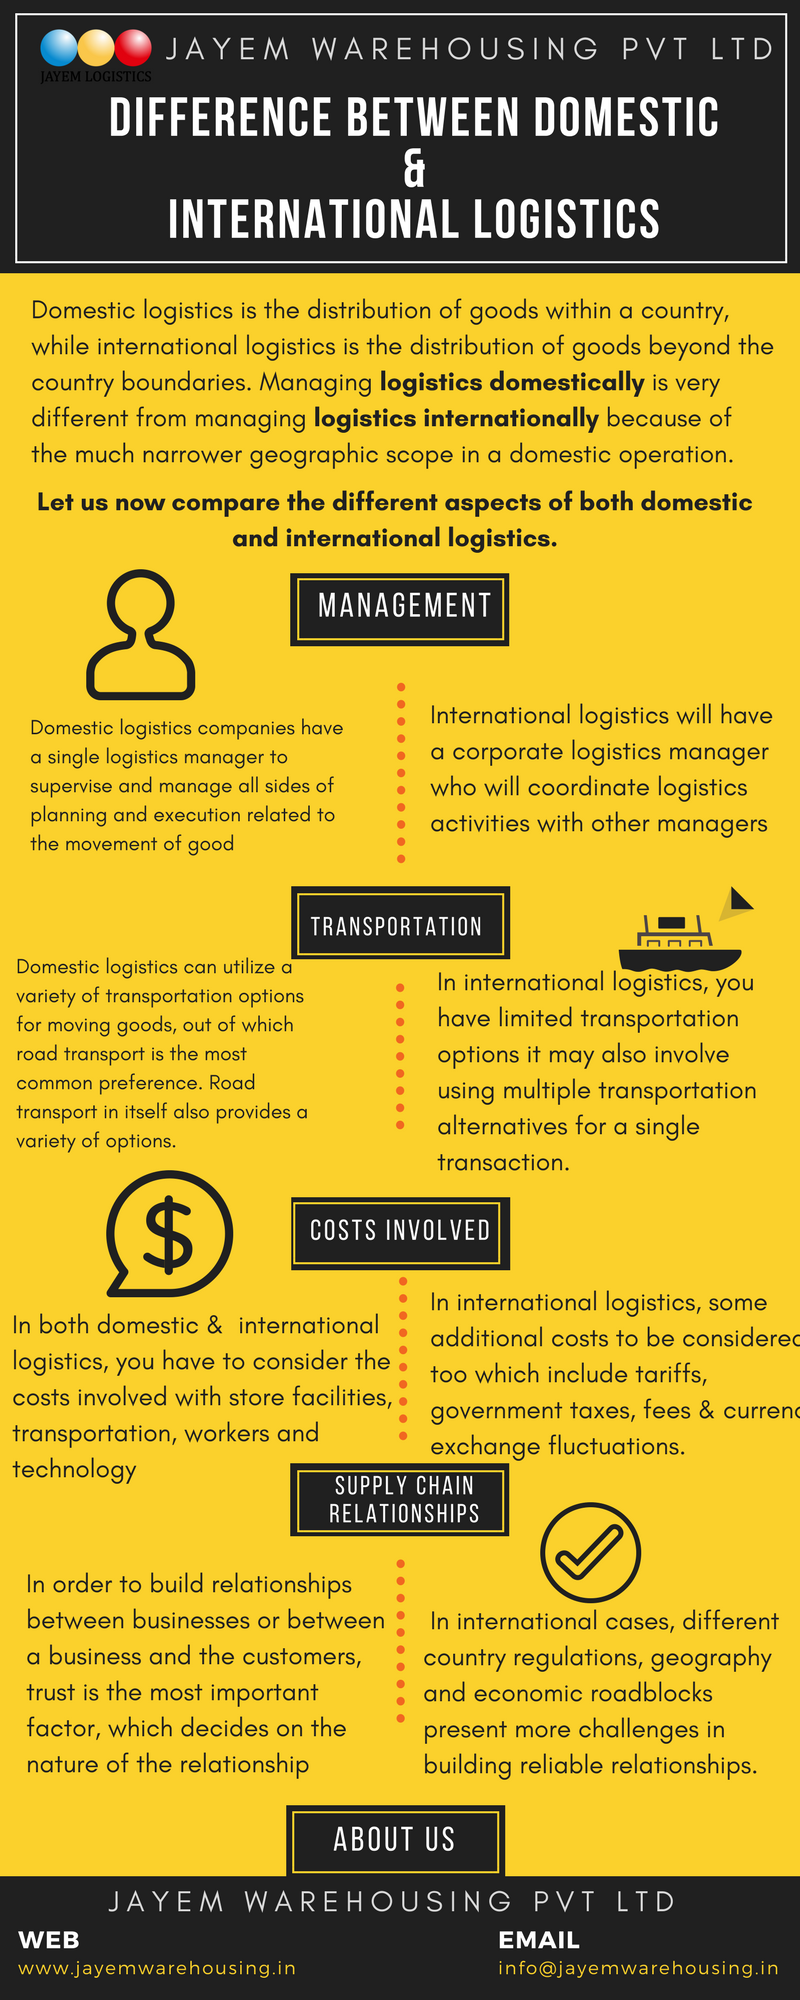 Difference Between Domestic And International : difference, between, domestic, international, Difference, Between, Domestic, International, #Logistics,Infographic, Image, Supplychain, Management, Logistics,, Infographic,, Supply, Chain